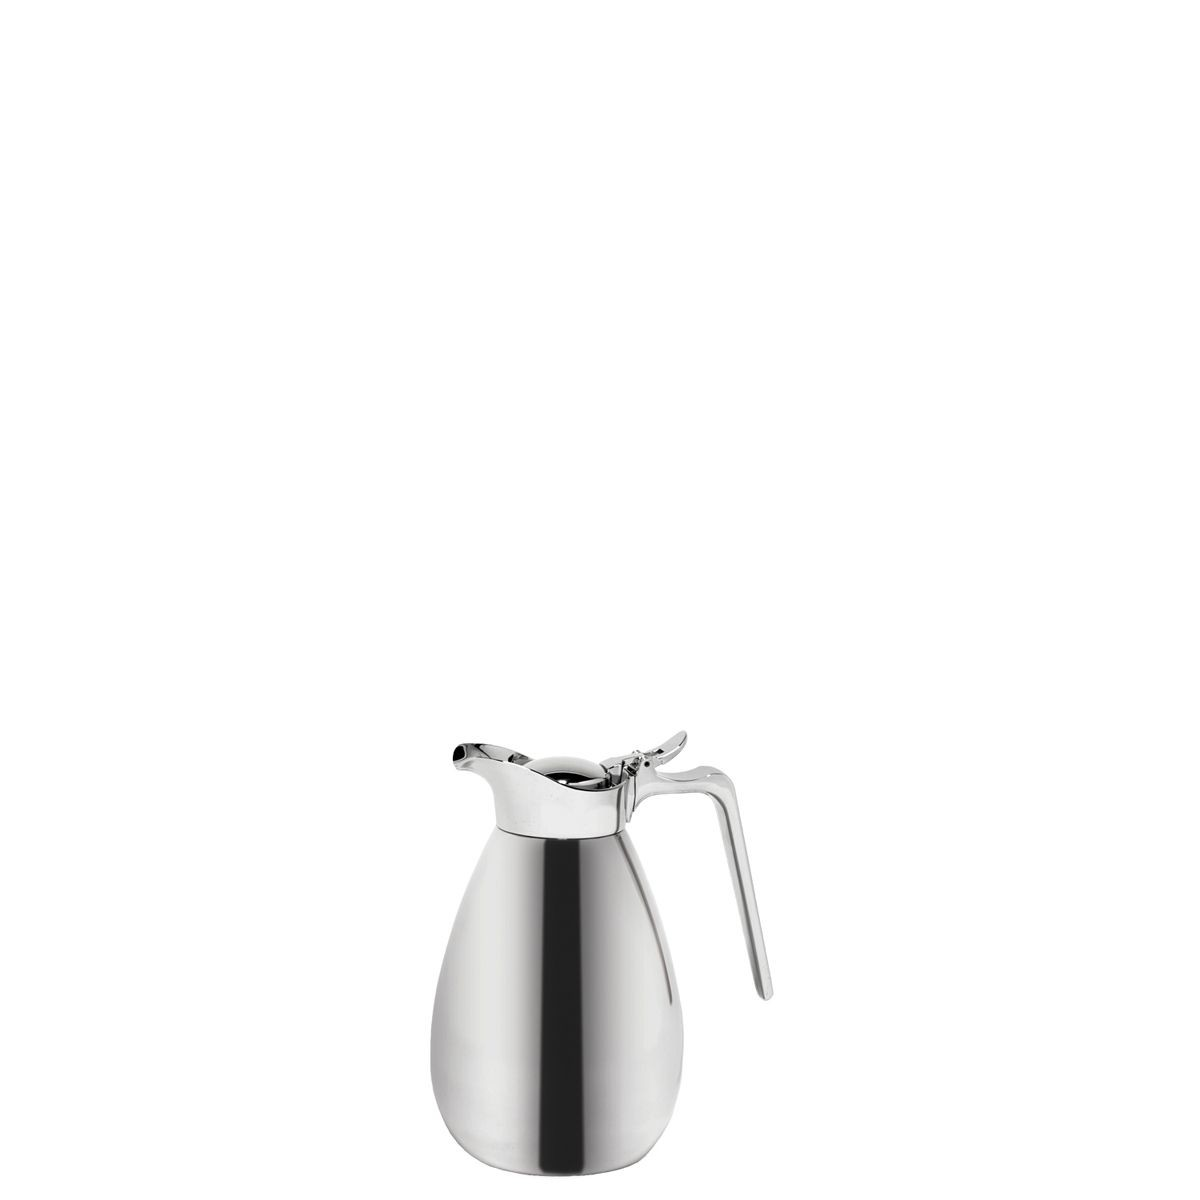 Service Ideas MEVC67 Elite Touch Polished Stainless Steel Server, 0.6 Liter